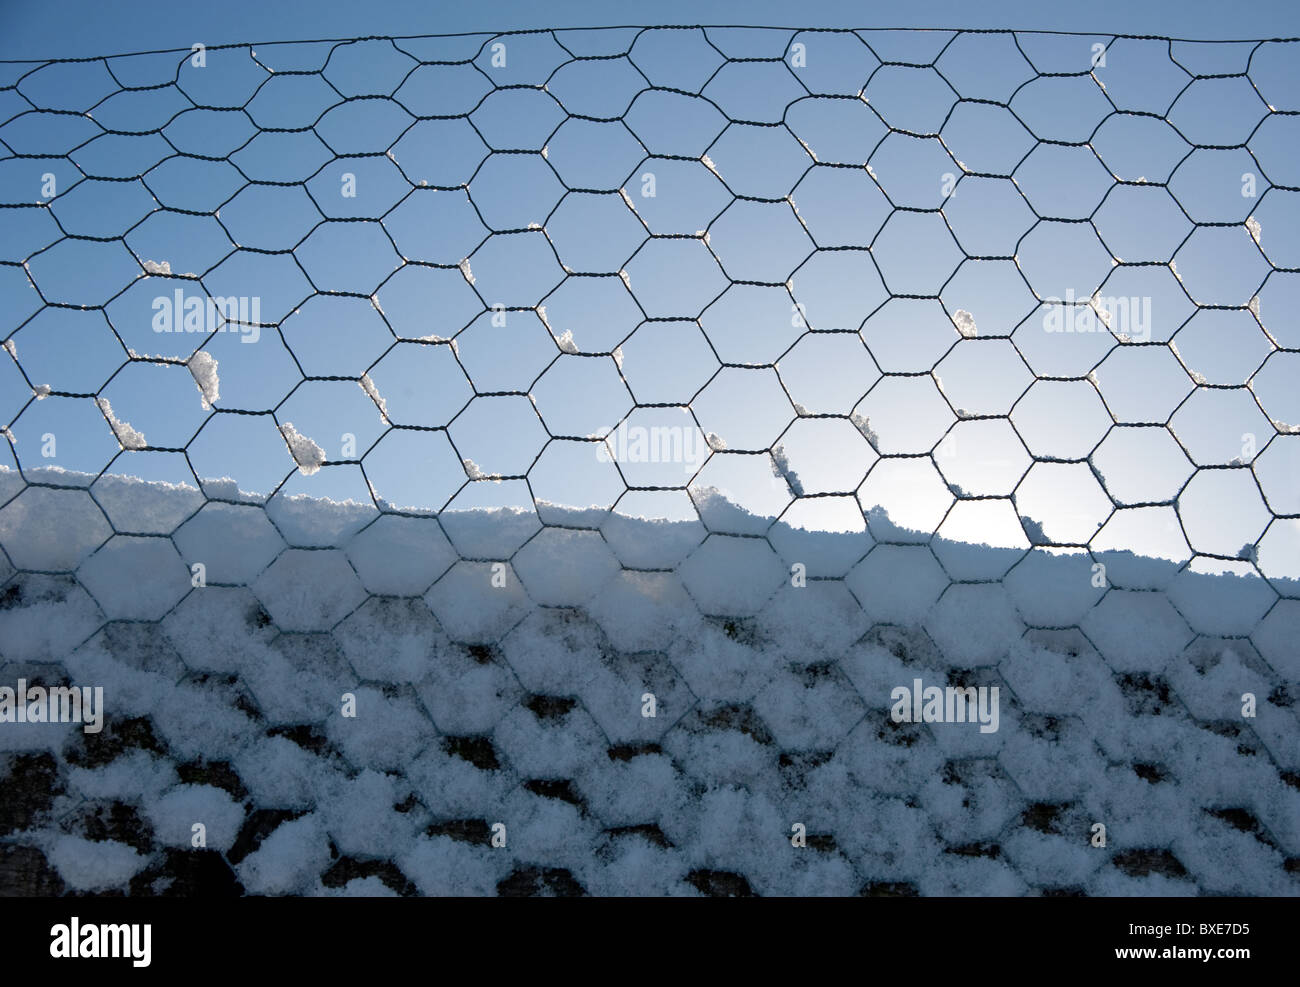 Chicken Mesh Stock Photos & Chicken Mesh Stock Images - Alamy